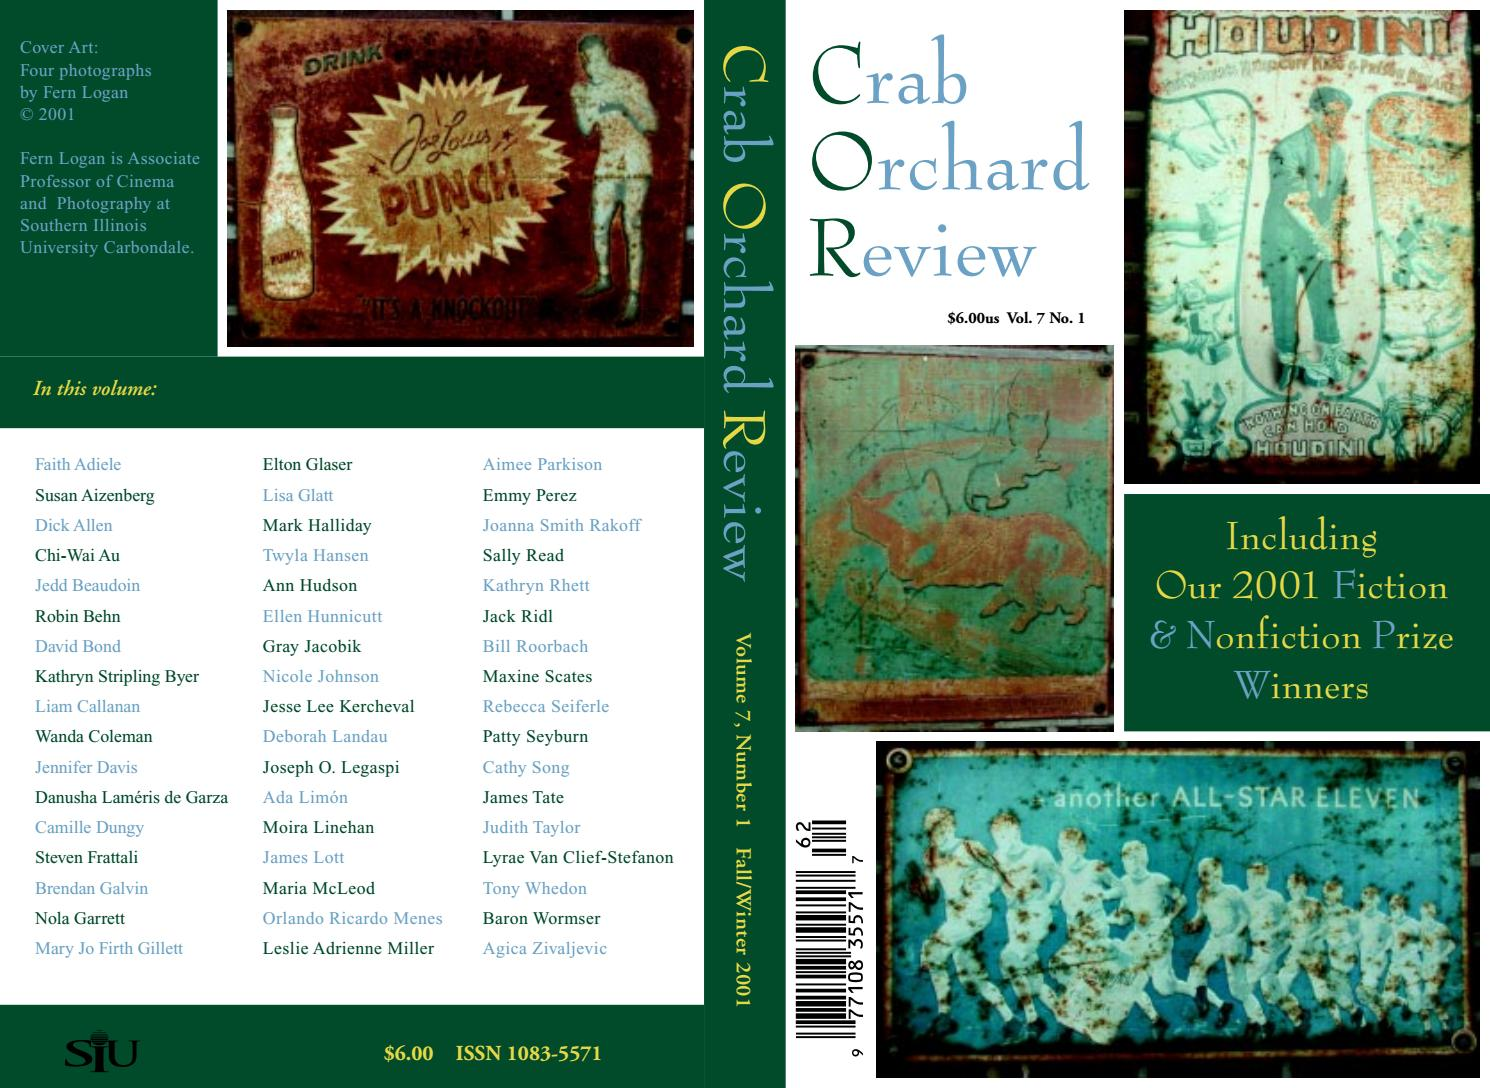 7368792e6 Crab Orchard Review Vol 7 No 1 F/W 2001 by Crab Orchard Review - issuu